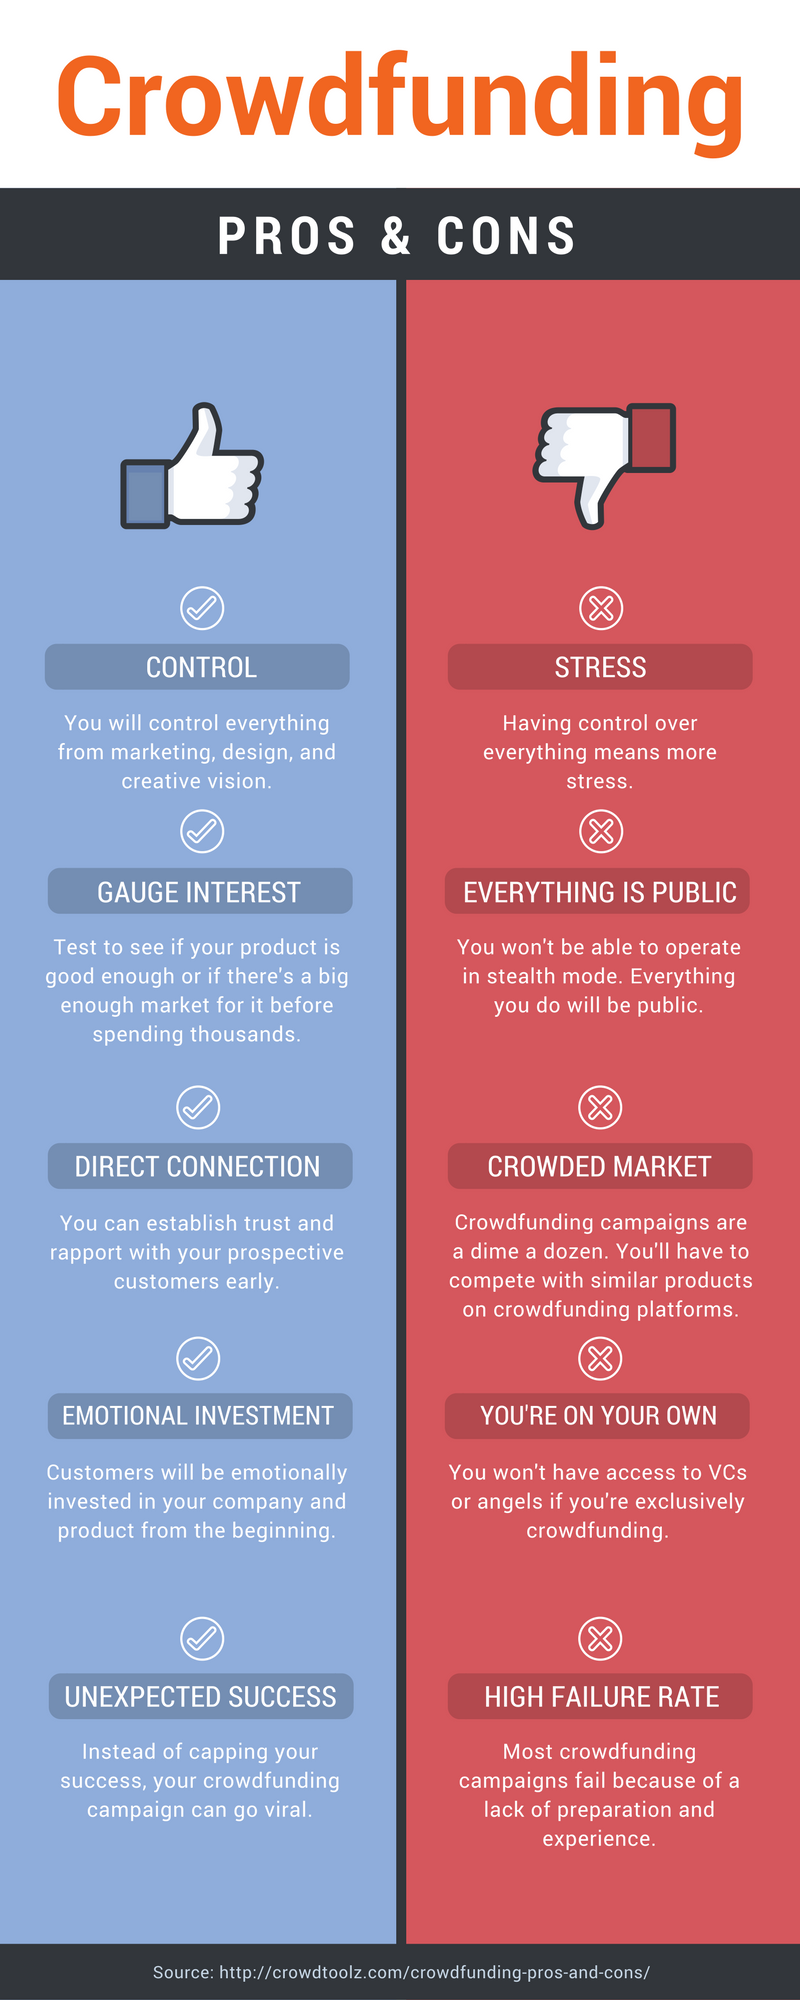 crowdfunding pros and cons infographic